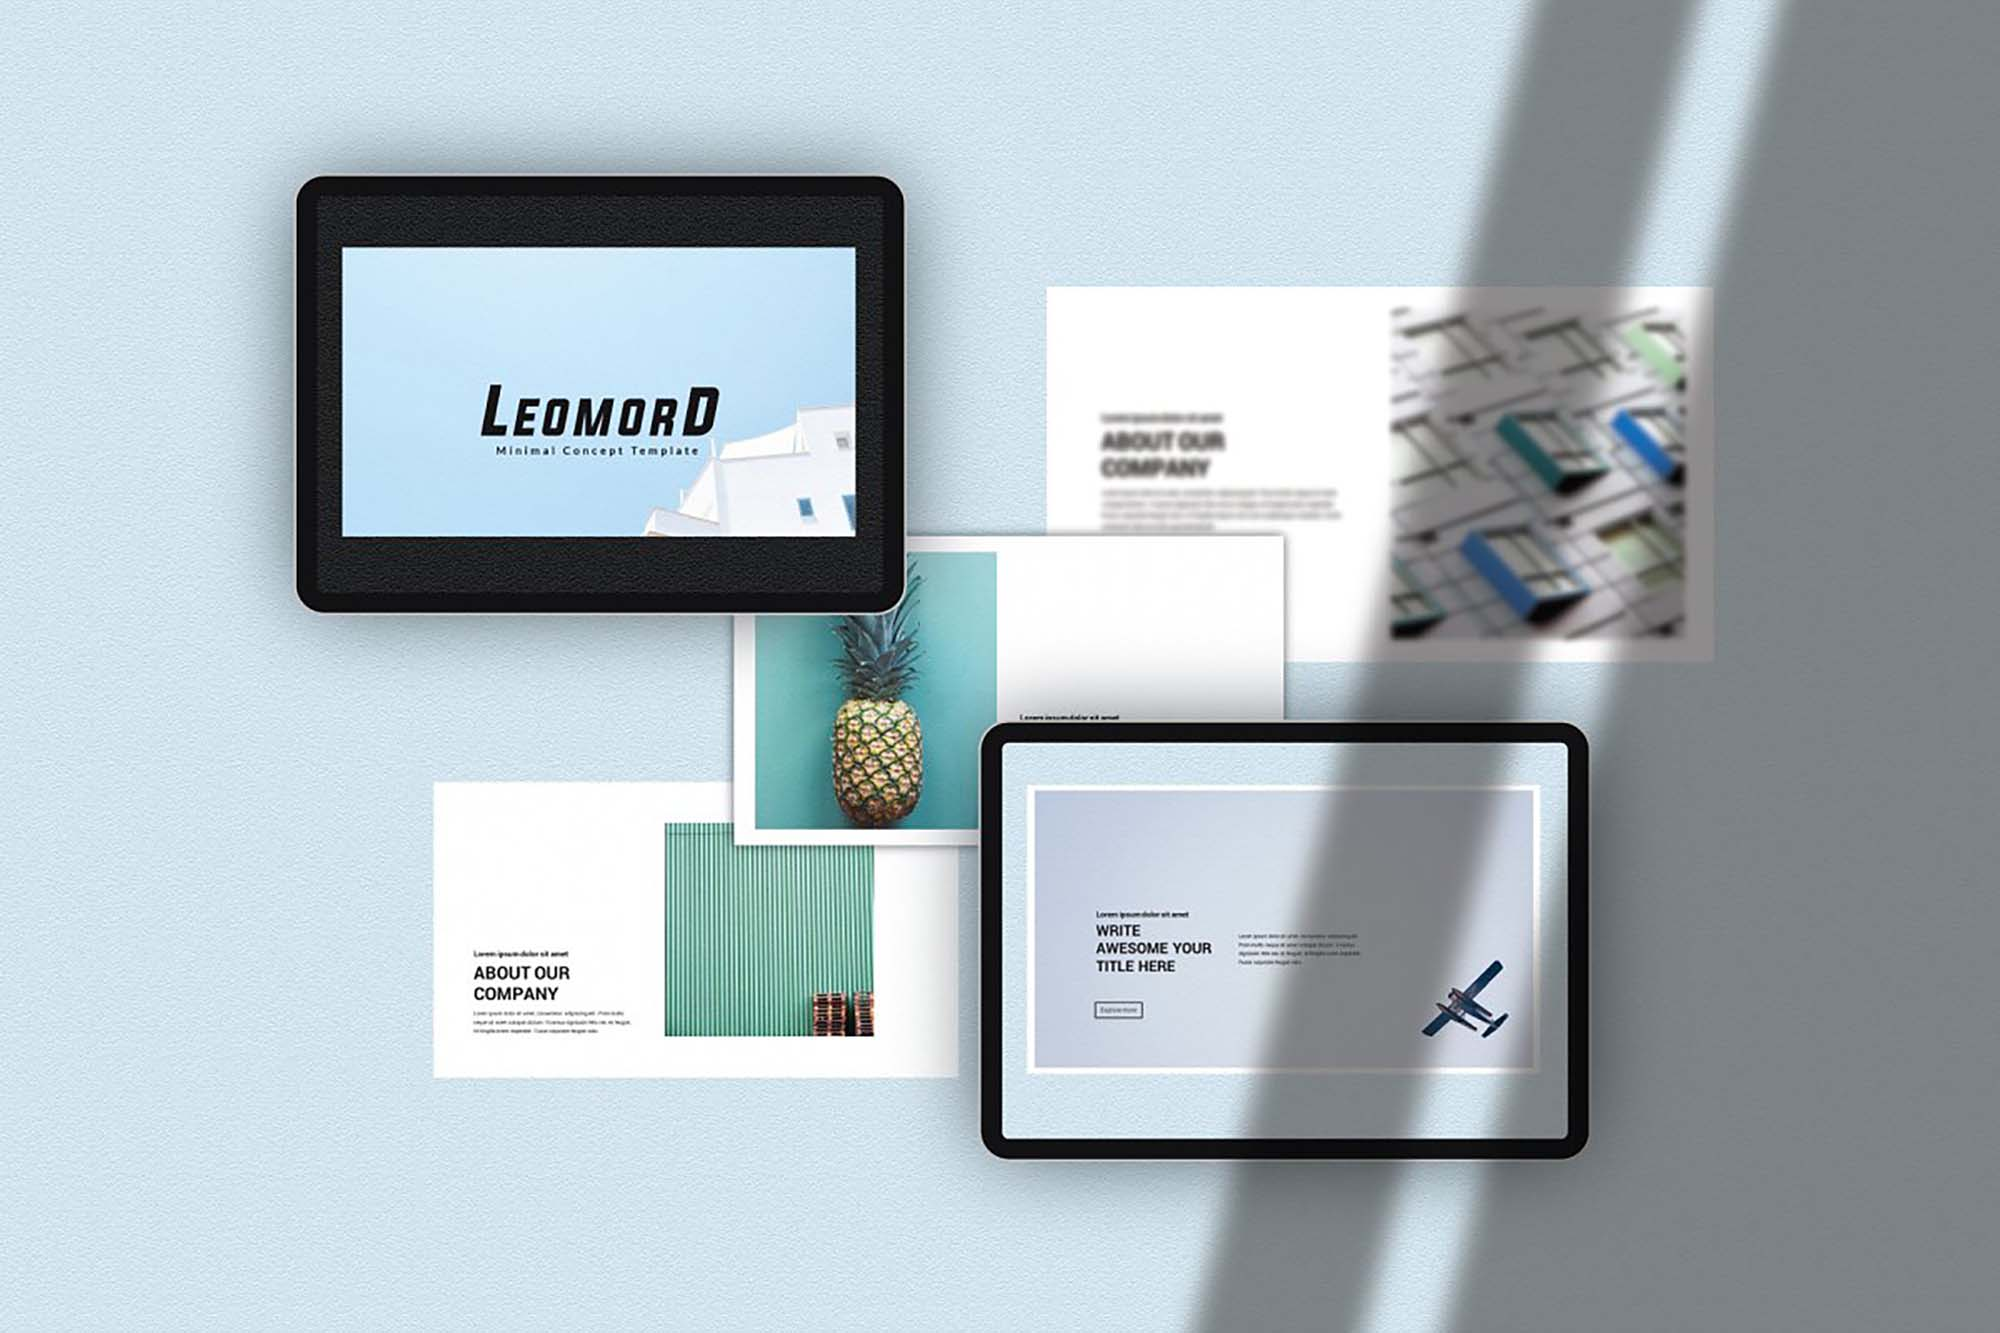 Leomord Powerpoint Presentation Template